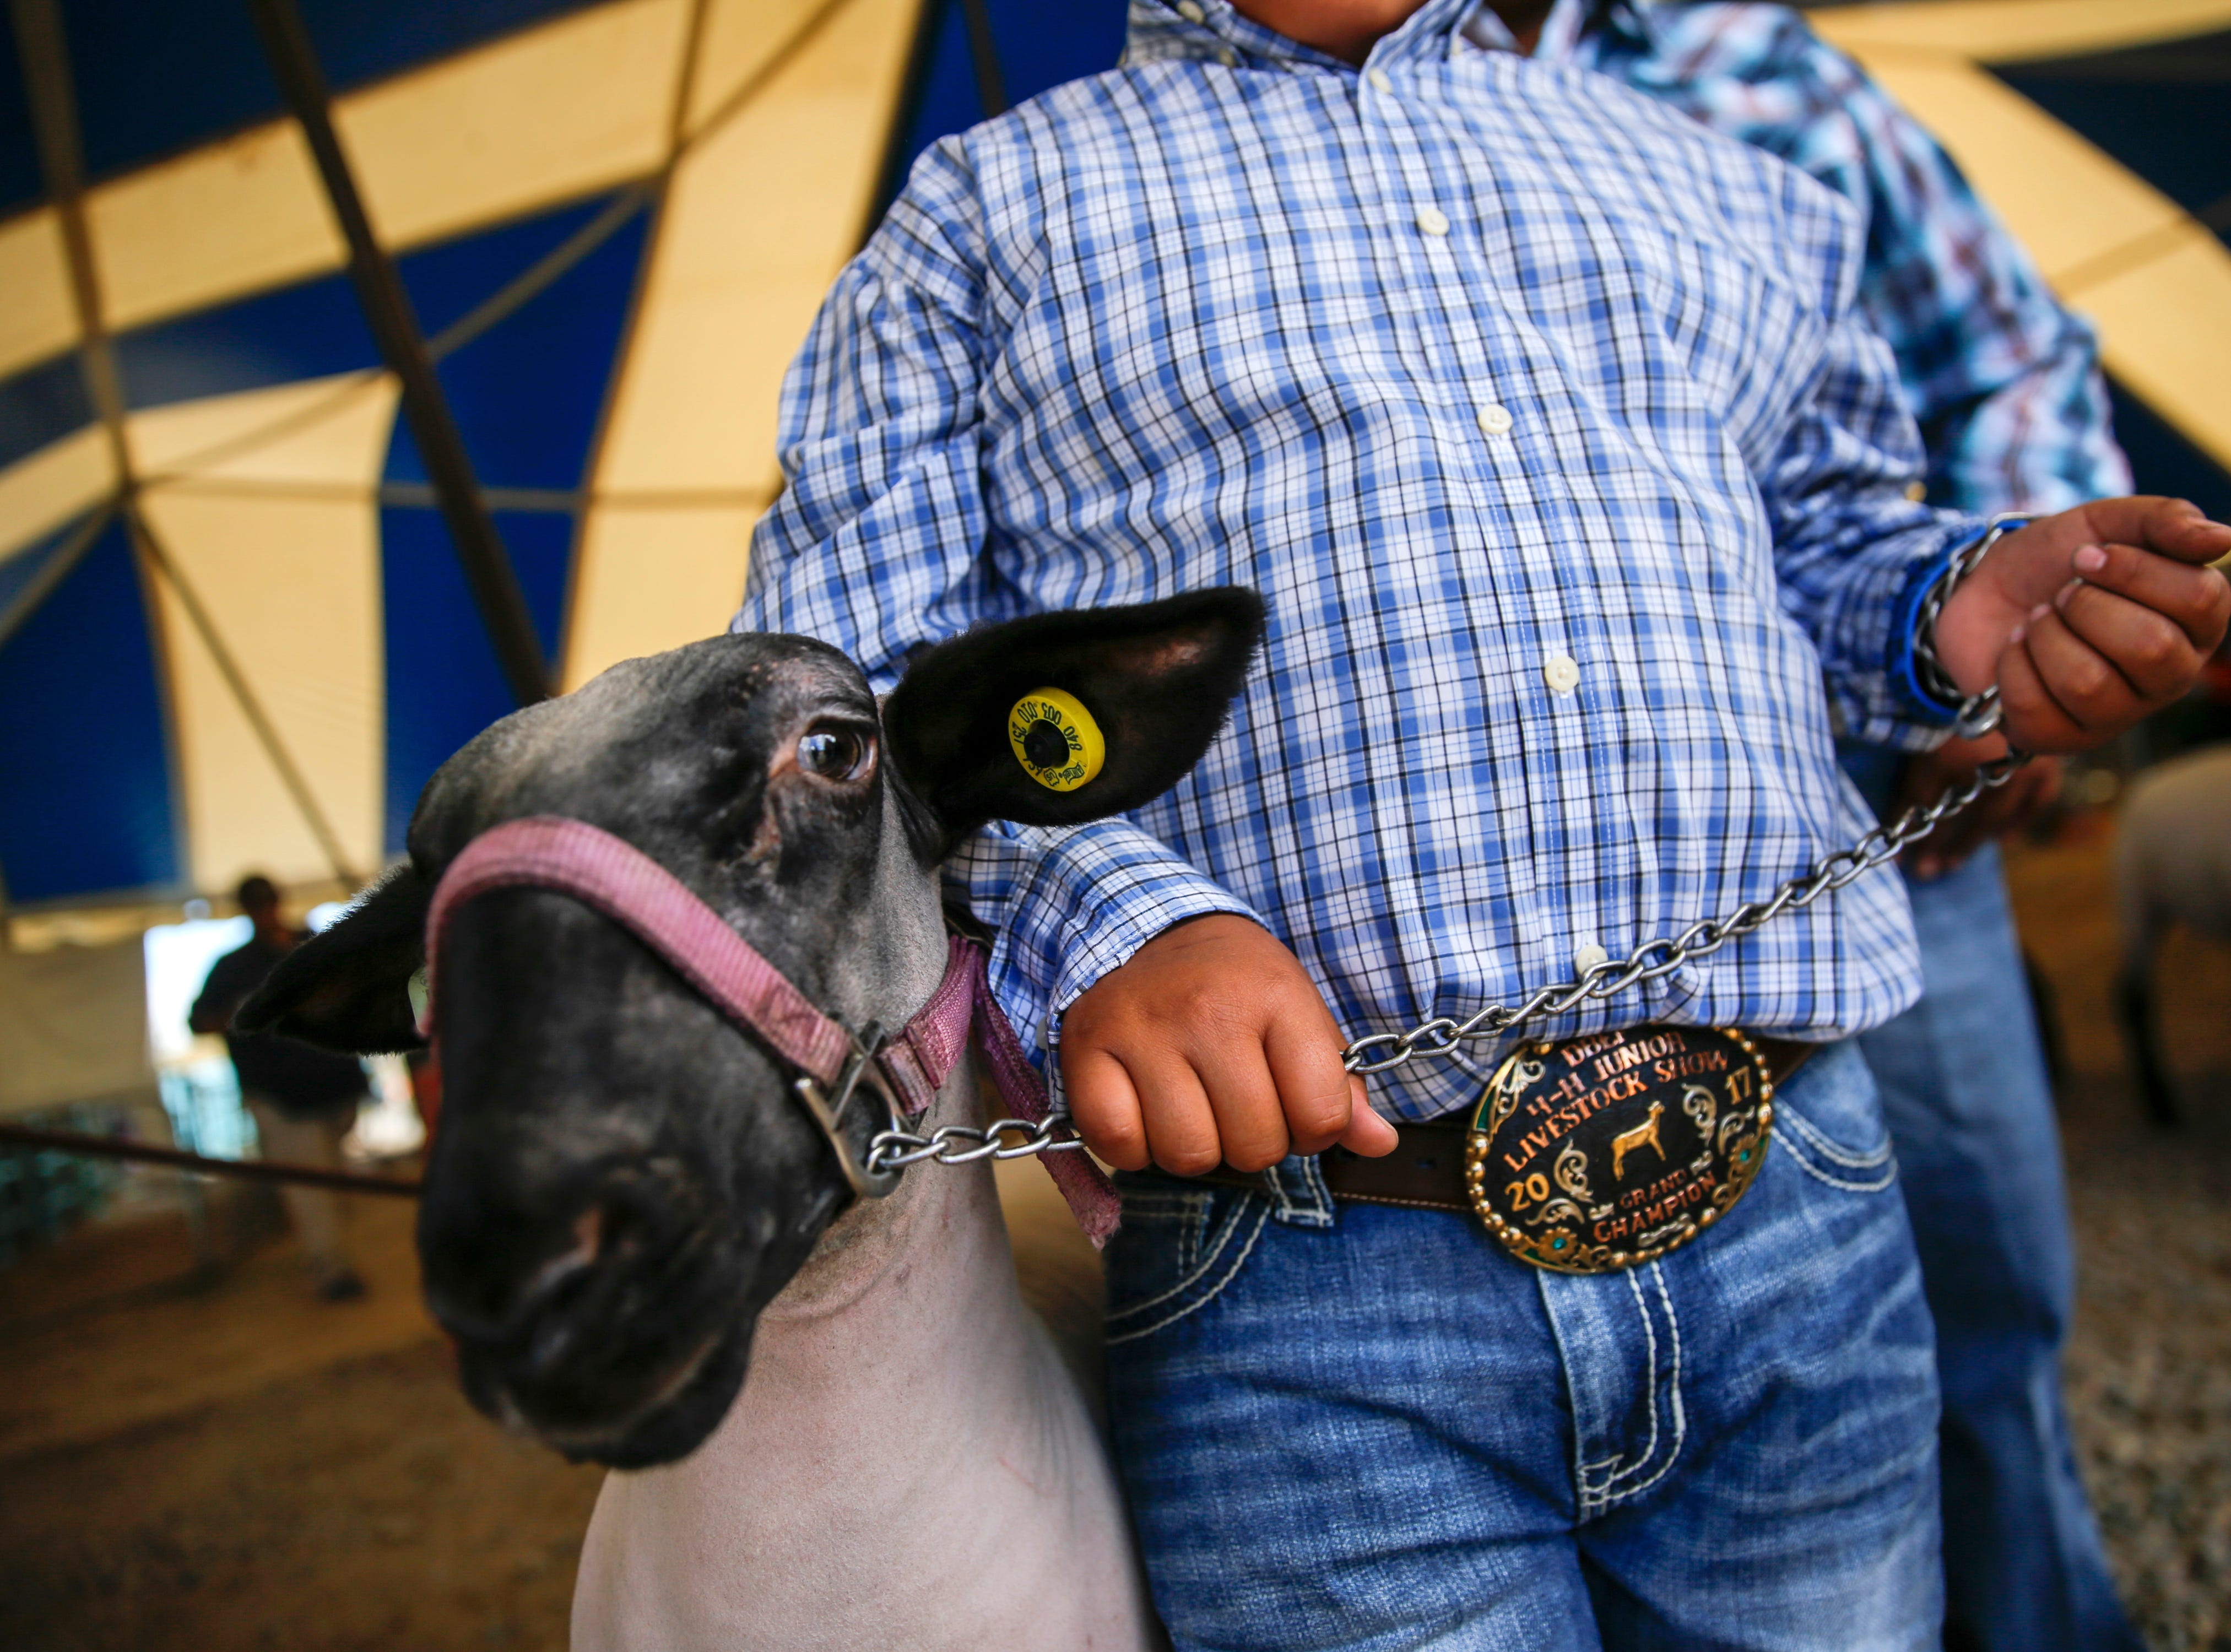 Thayda Burnside gets ready to enter to have his sheep judged in the grand championship judging event for medium sized sheep, Thursday, Oct. 4, 2018  during the Northern Navajo Nation Fair 4-H Livestock Show in Shiprock.